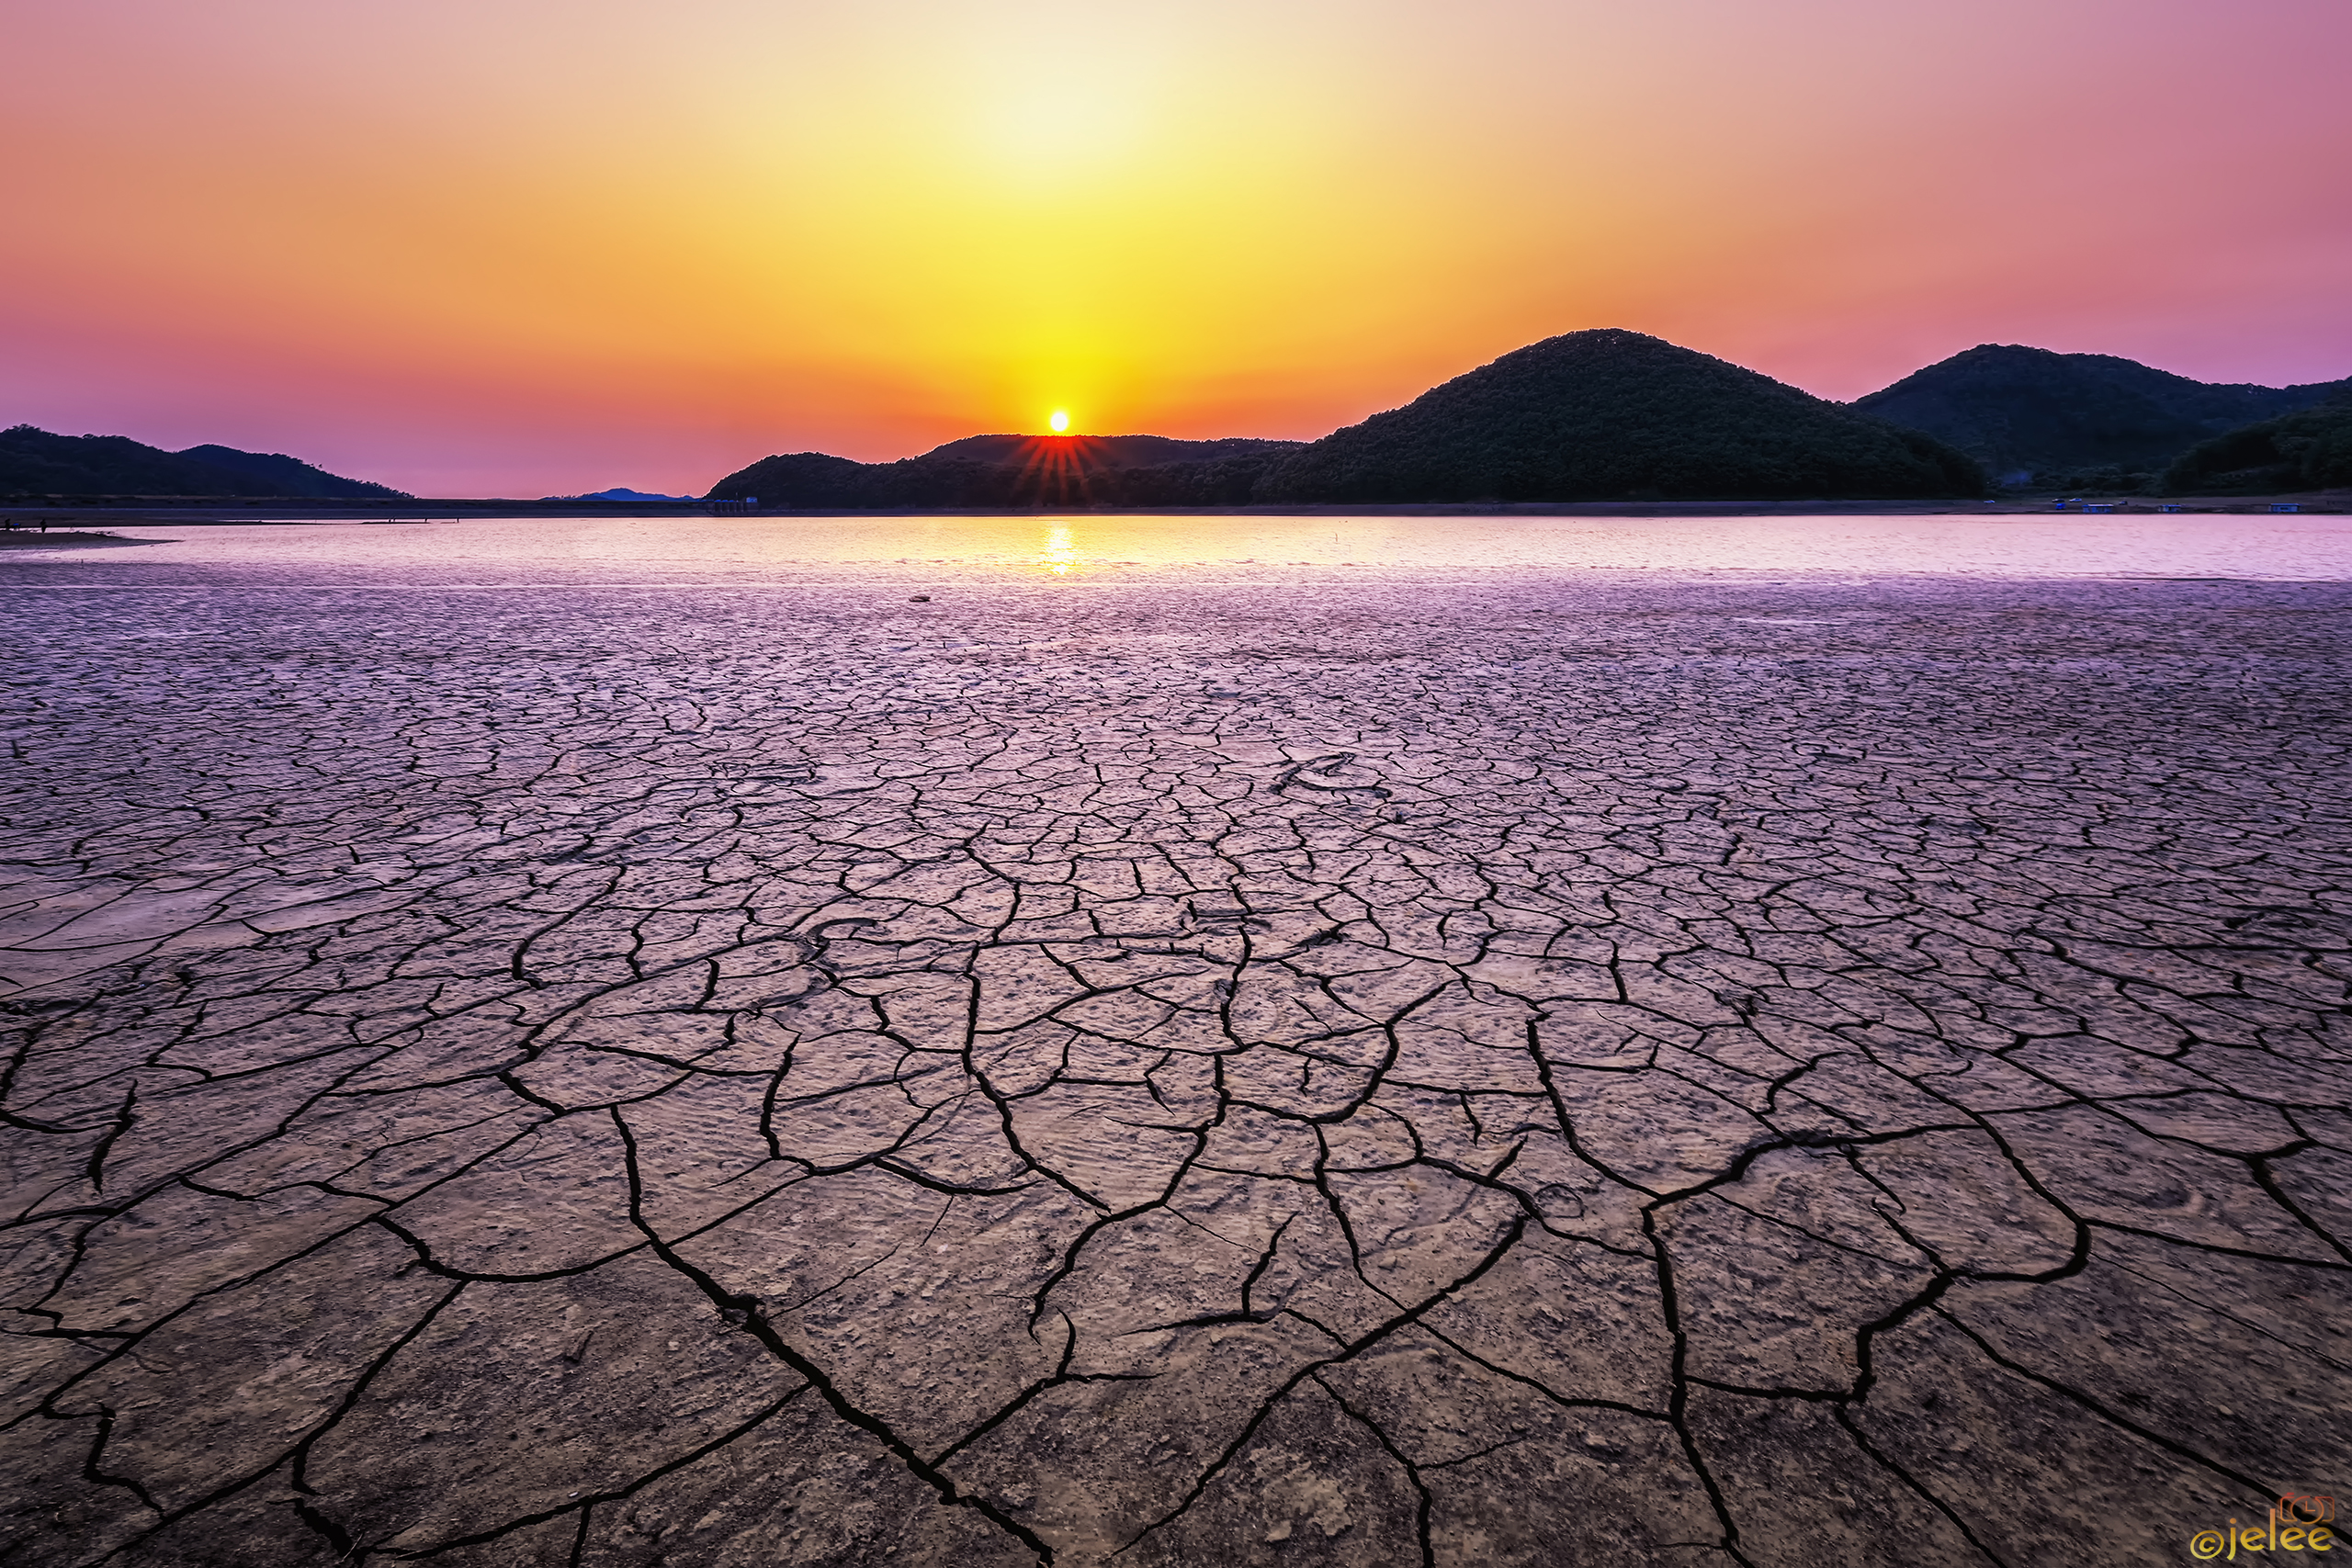 A drought-stricken riverbed